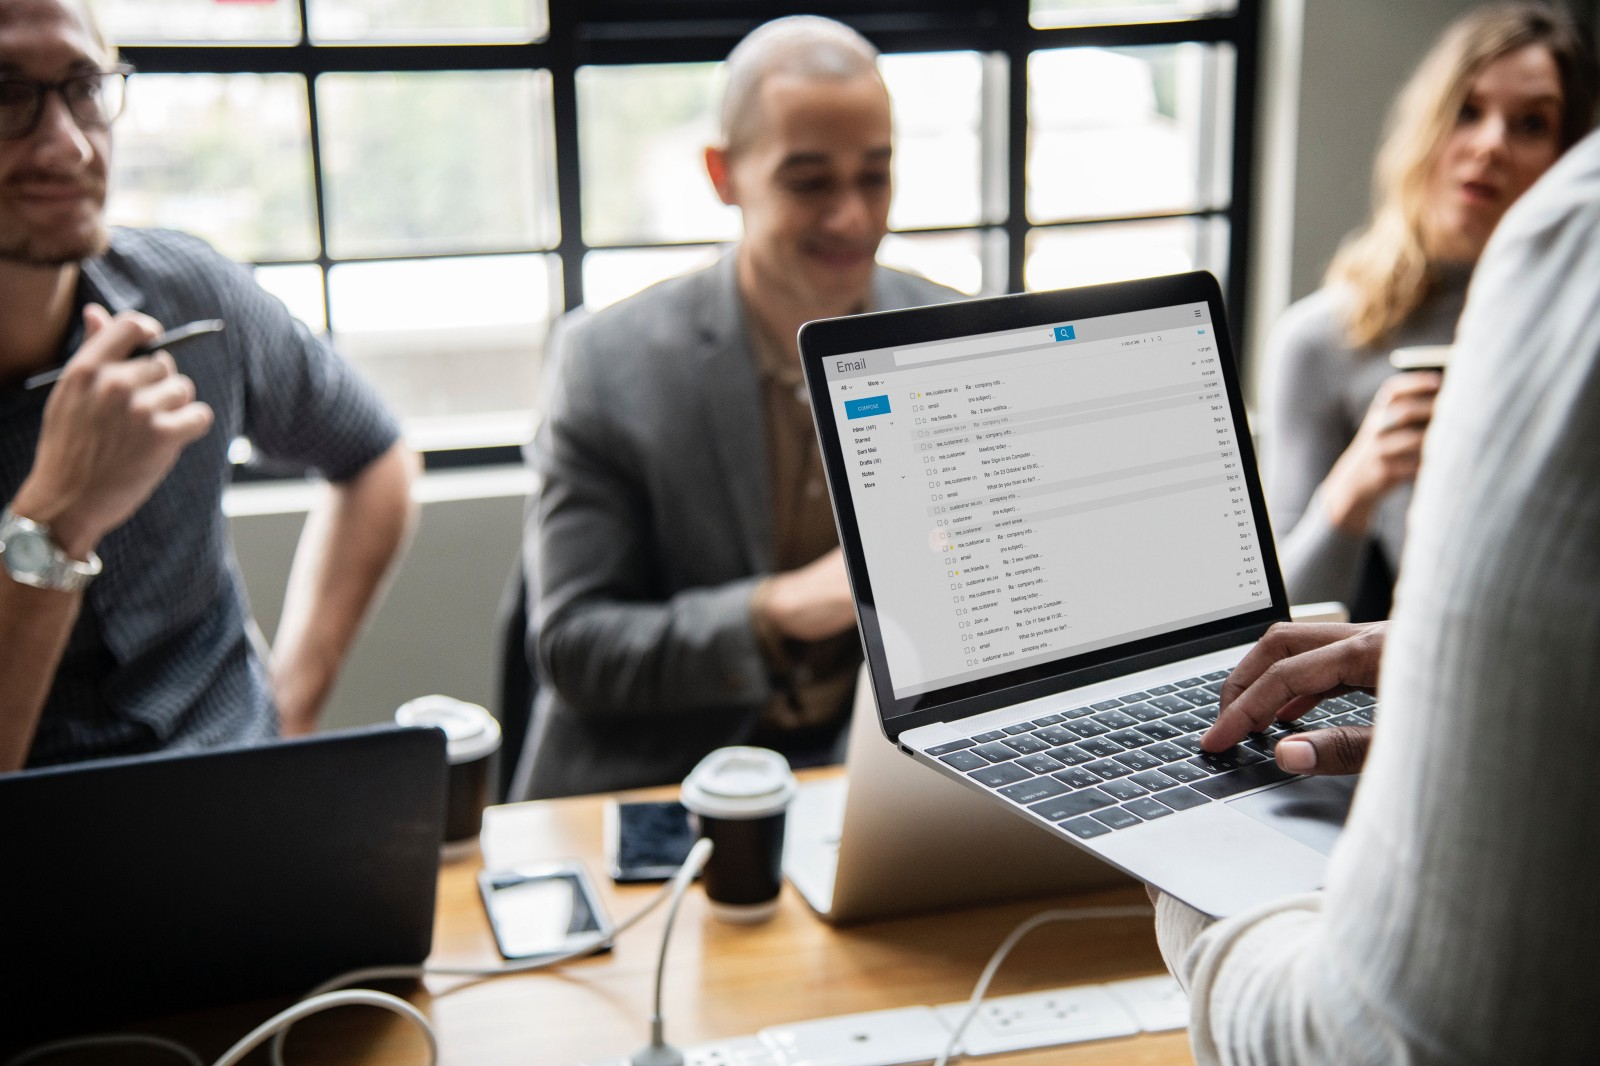 Whether you use Gmail, Outlook, or Office 365, knowing how to share an address book can be a huge boost to your email productivity.